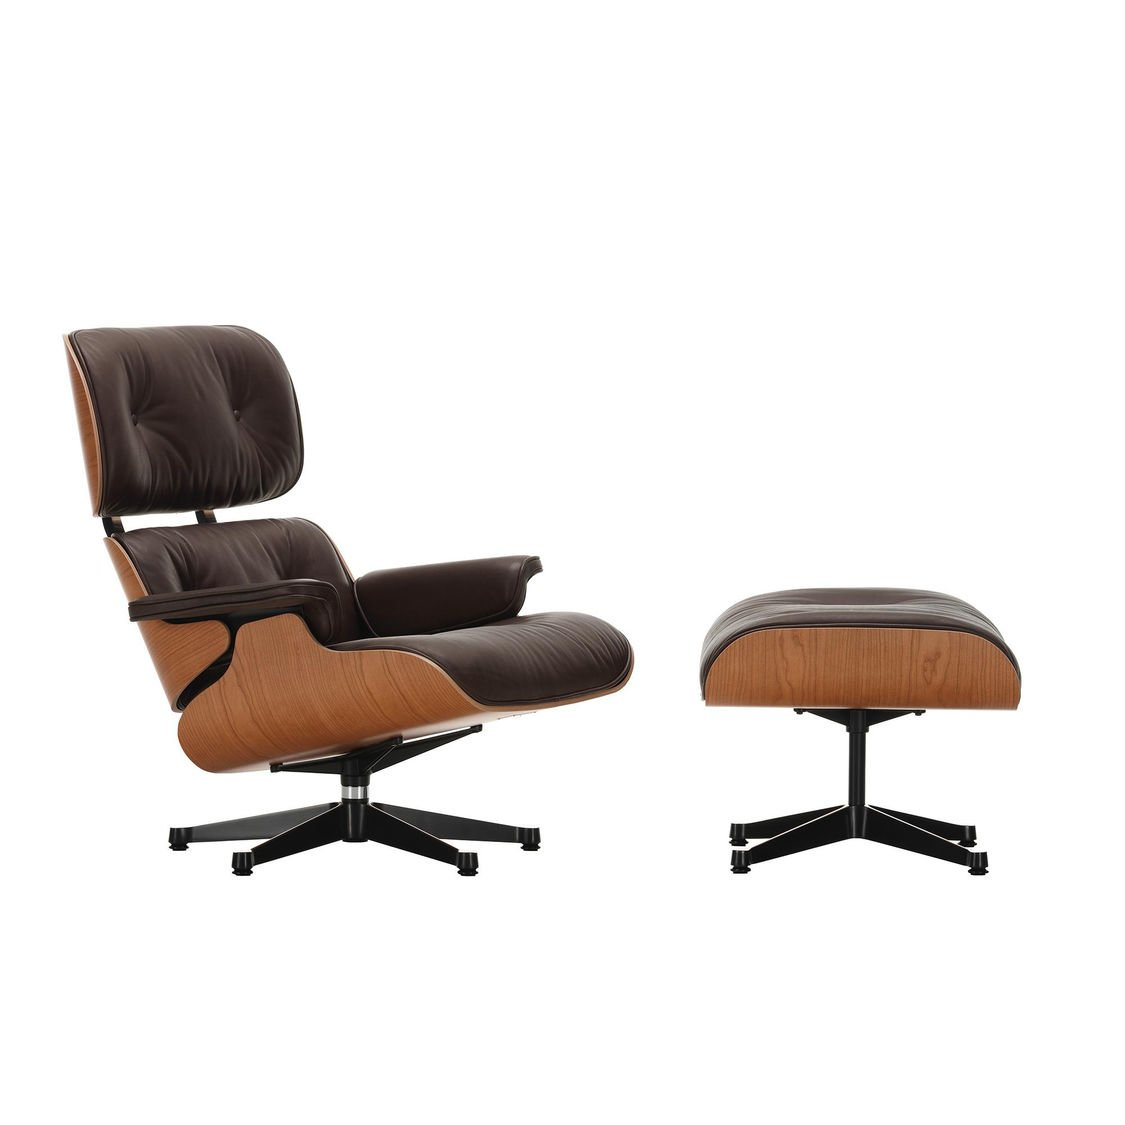 Vitra eames lounge chair sessel ottoman ambientedirect for Eames sessel